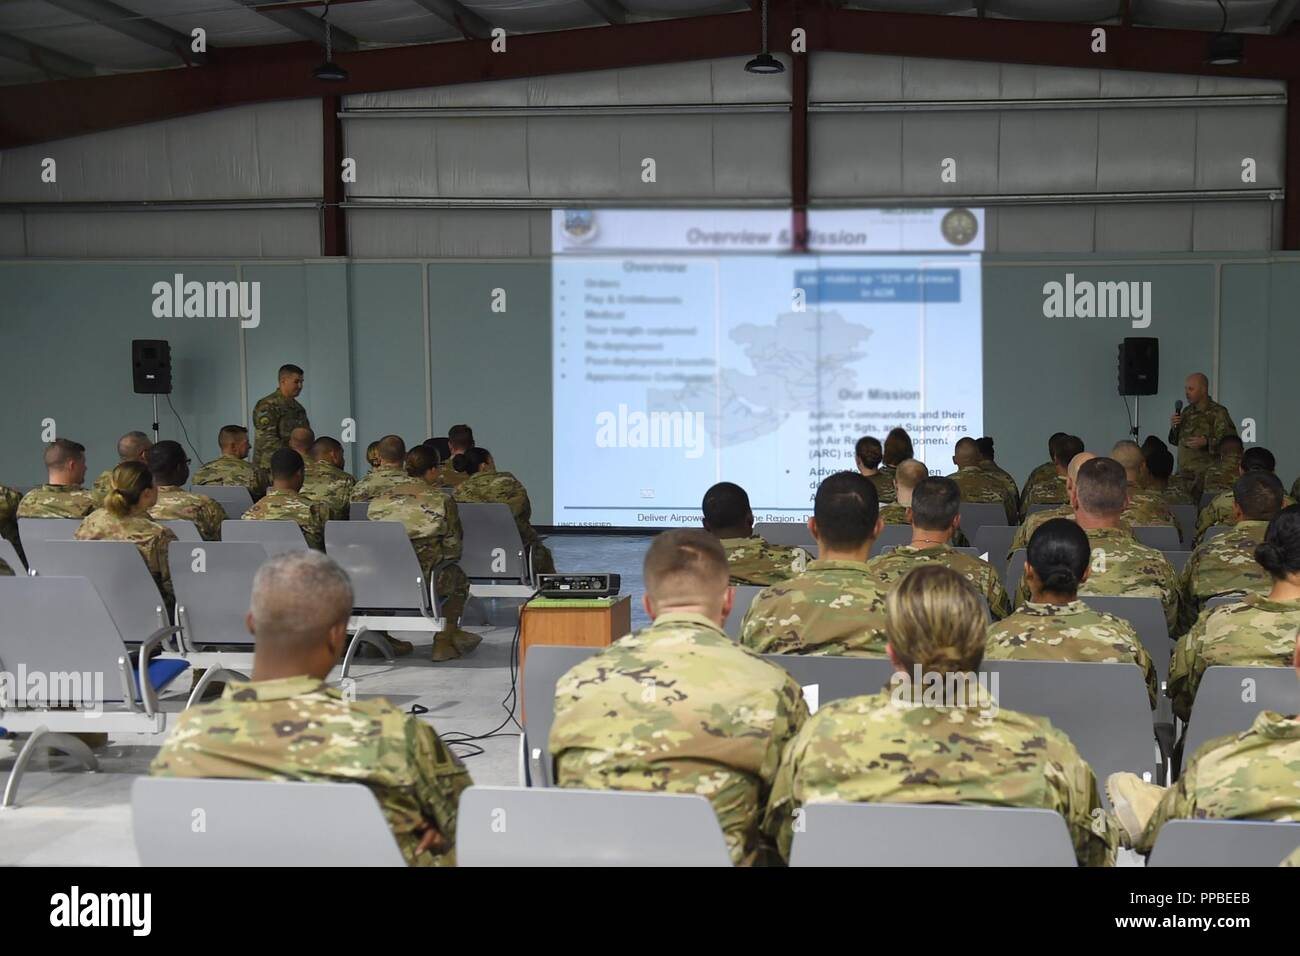 Lt. Col. Andrew Frankel (left), Deputy Air Reserve Component advisor and Col. Cory Reid (right), Senior ARC advisor, speak to Air Reserve and Air National Guard members deployed to the 407th Air Expeditionary Group at a town hall meeting at an undisclosed location in Southwest Asia, Aug. 24, 2018. Frankel and Reid met with ARC Airmen and 407th AEG leadership at all levels to make sure they had a complete understanding of what ARC Airmen bring to the fight and address any concerns ARC members may have while deployed. Stock Photo